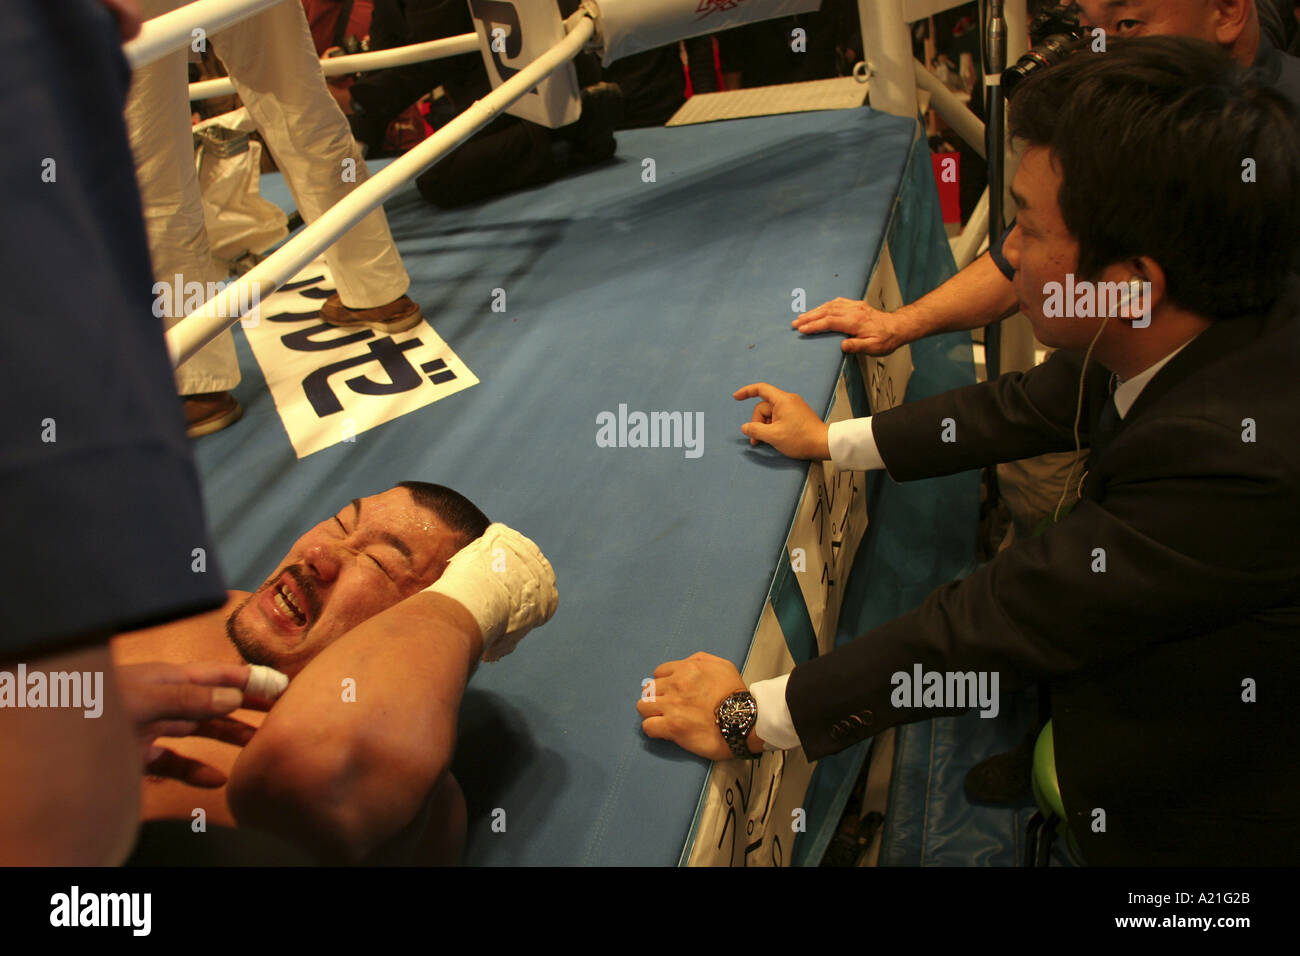 K-1 fighter winces in pain in the ring after defeat by knock-out, Tokyo, Japan - Stock Image